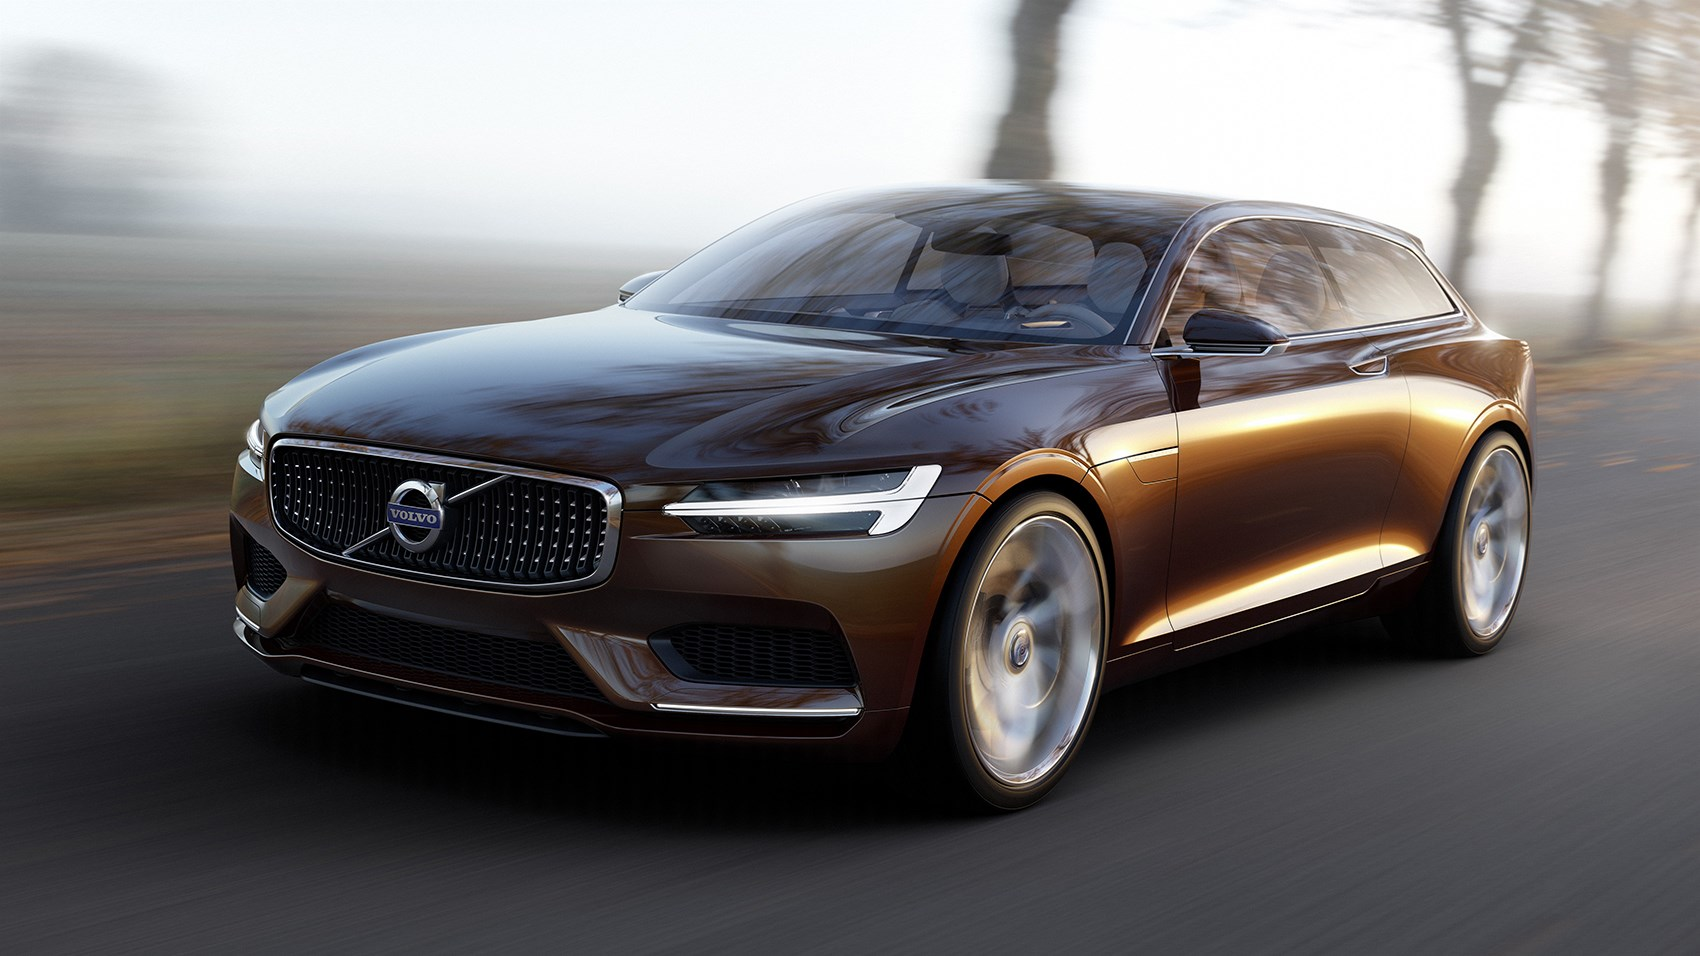 proud models unloaded speculation after the went name years owners cars and parent geely volvo automaker rumors sale car has chinese finally two now ford is of volvos wired new s help